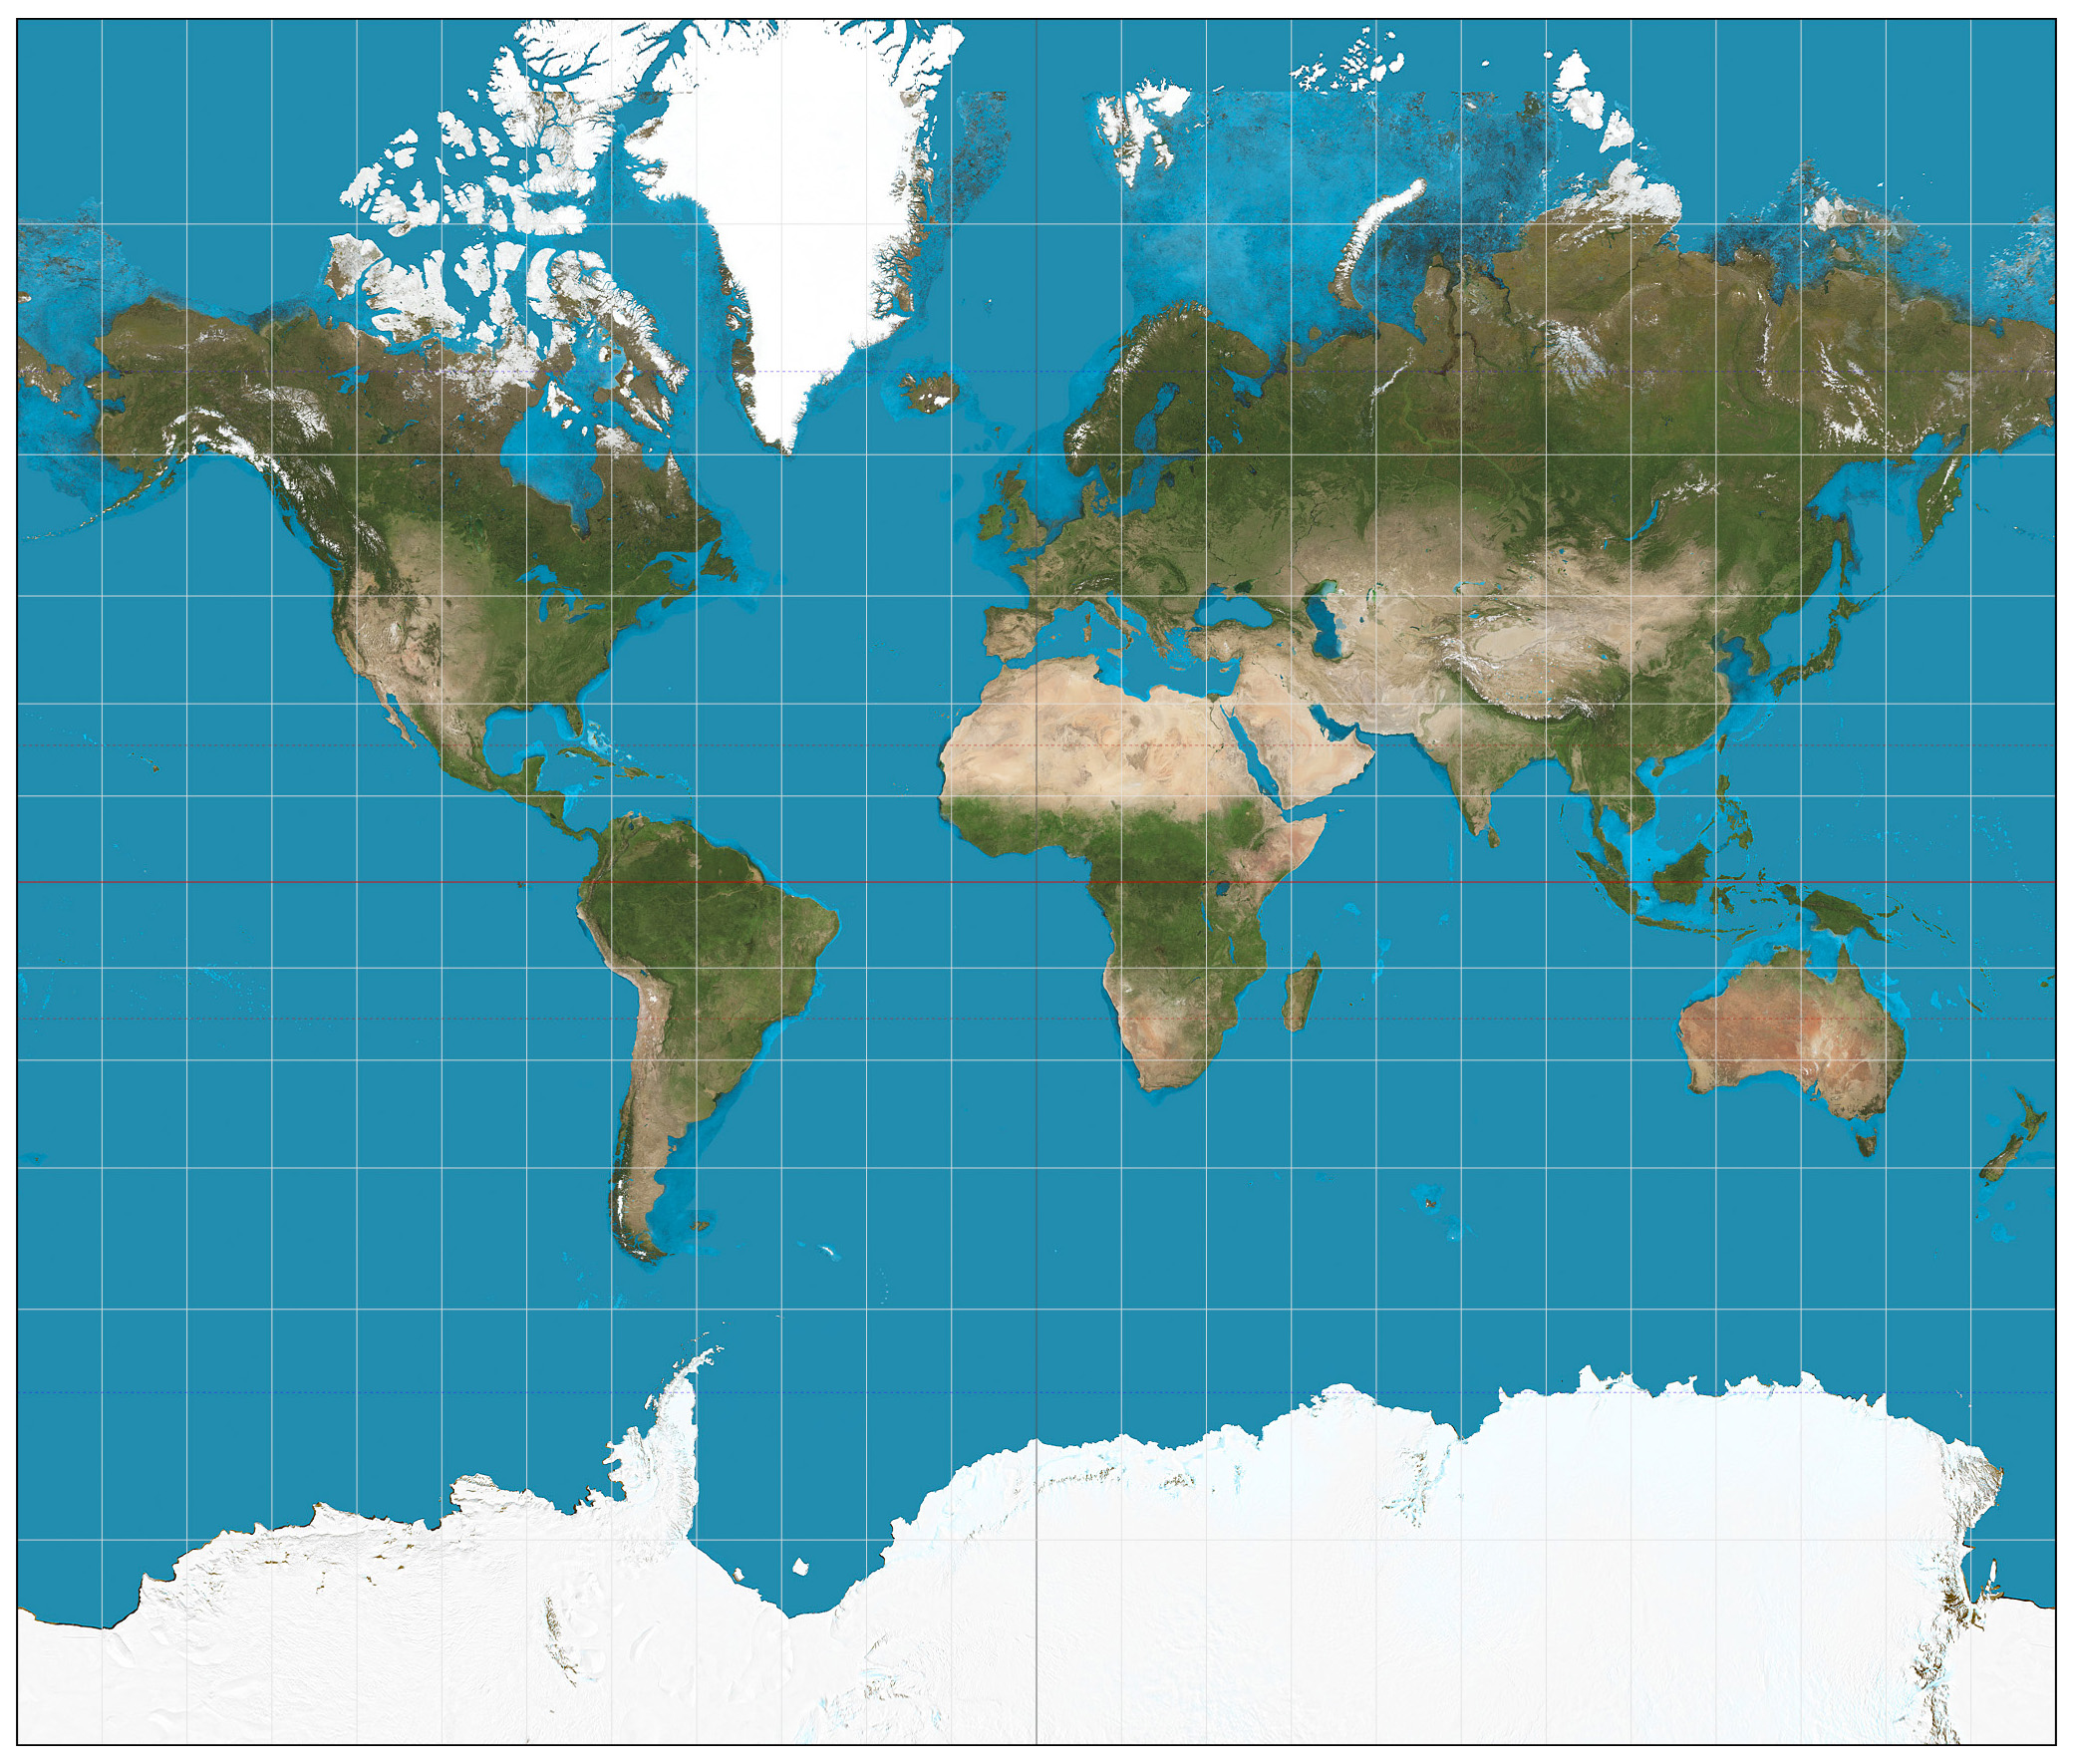 Satellite map of the world world mapsland maps of the world satellite map of the world gumiabroncs